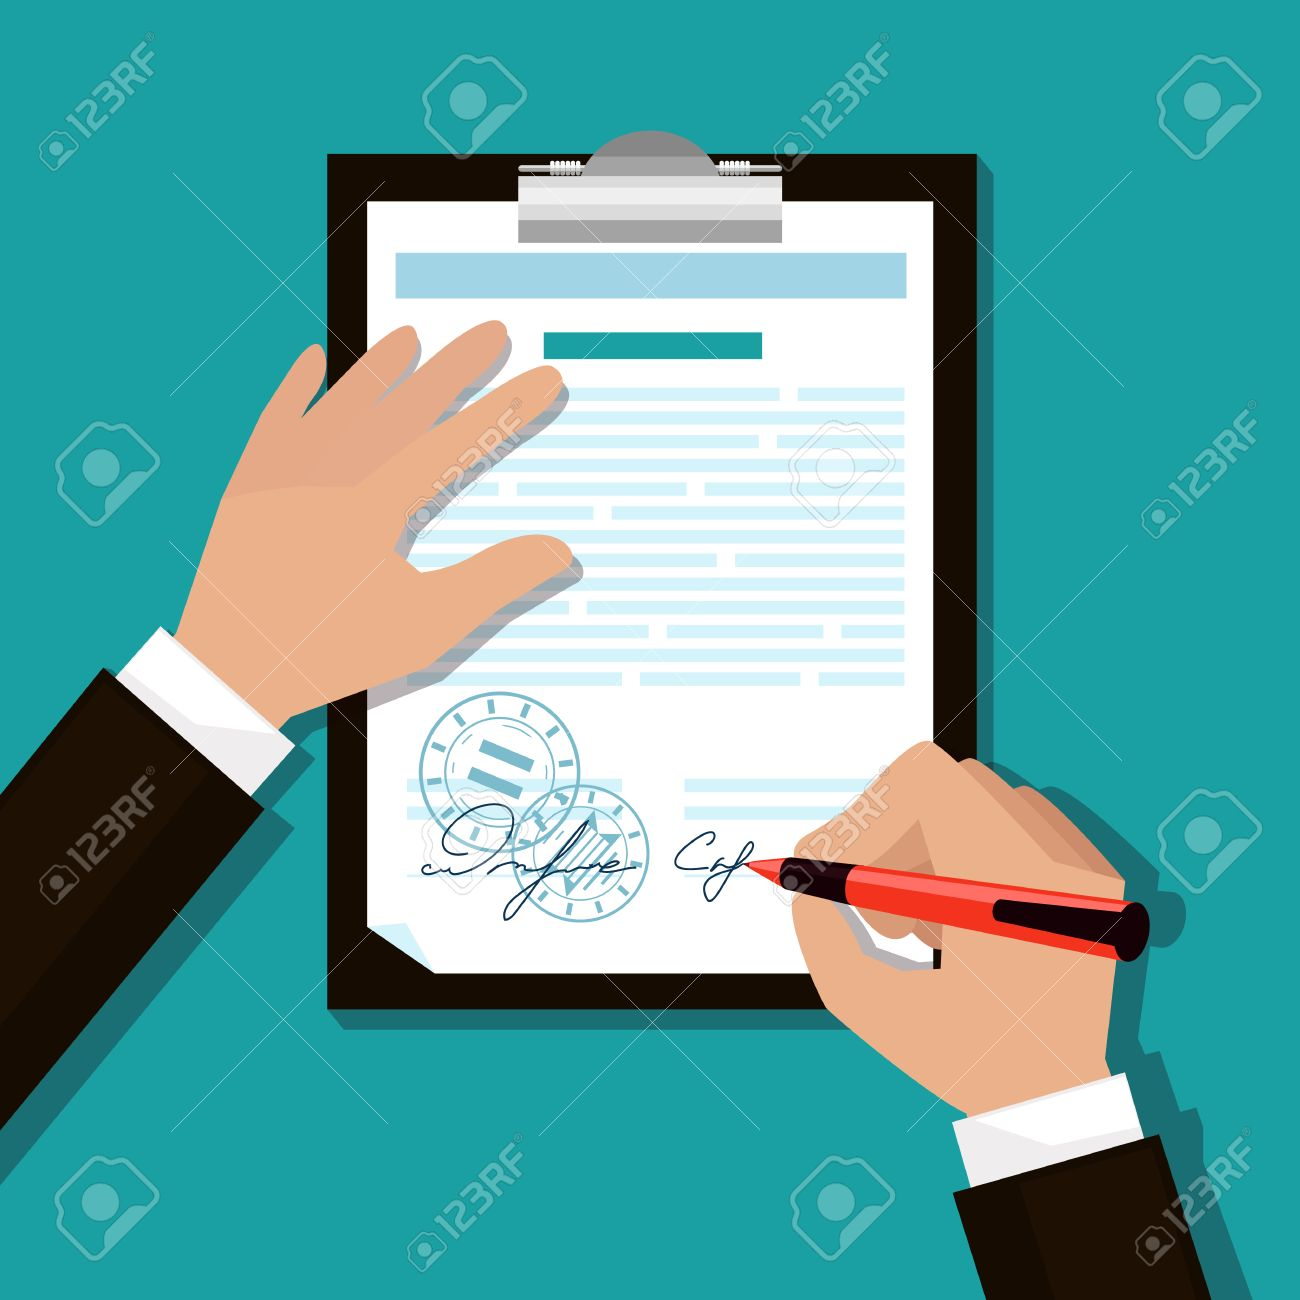 Man signs document stamped handle puts his signature cartoon flat design style - 34768606